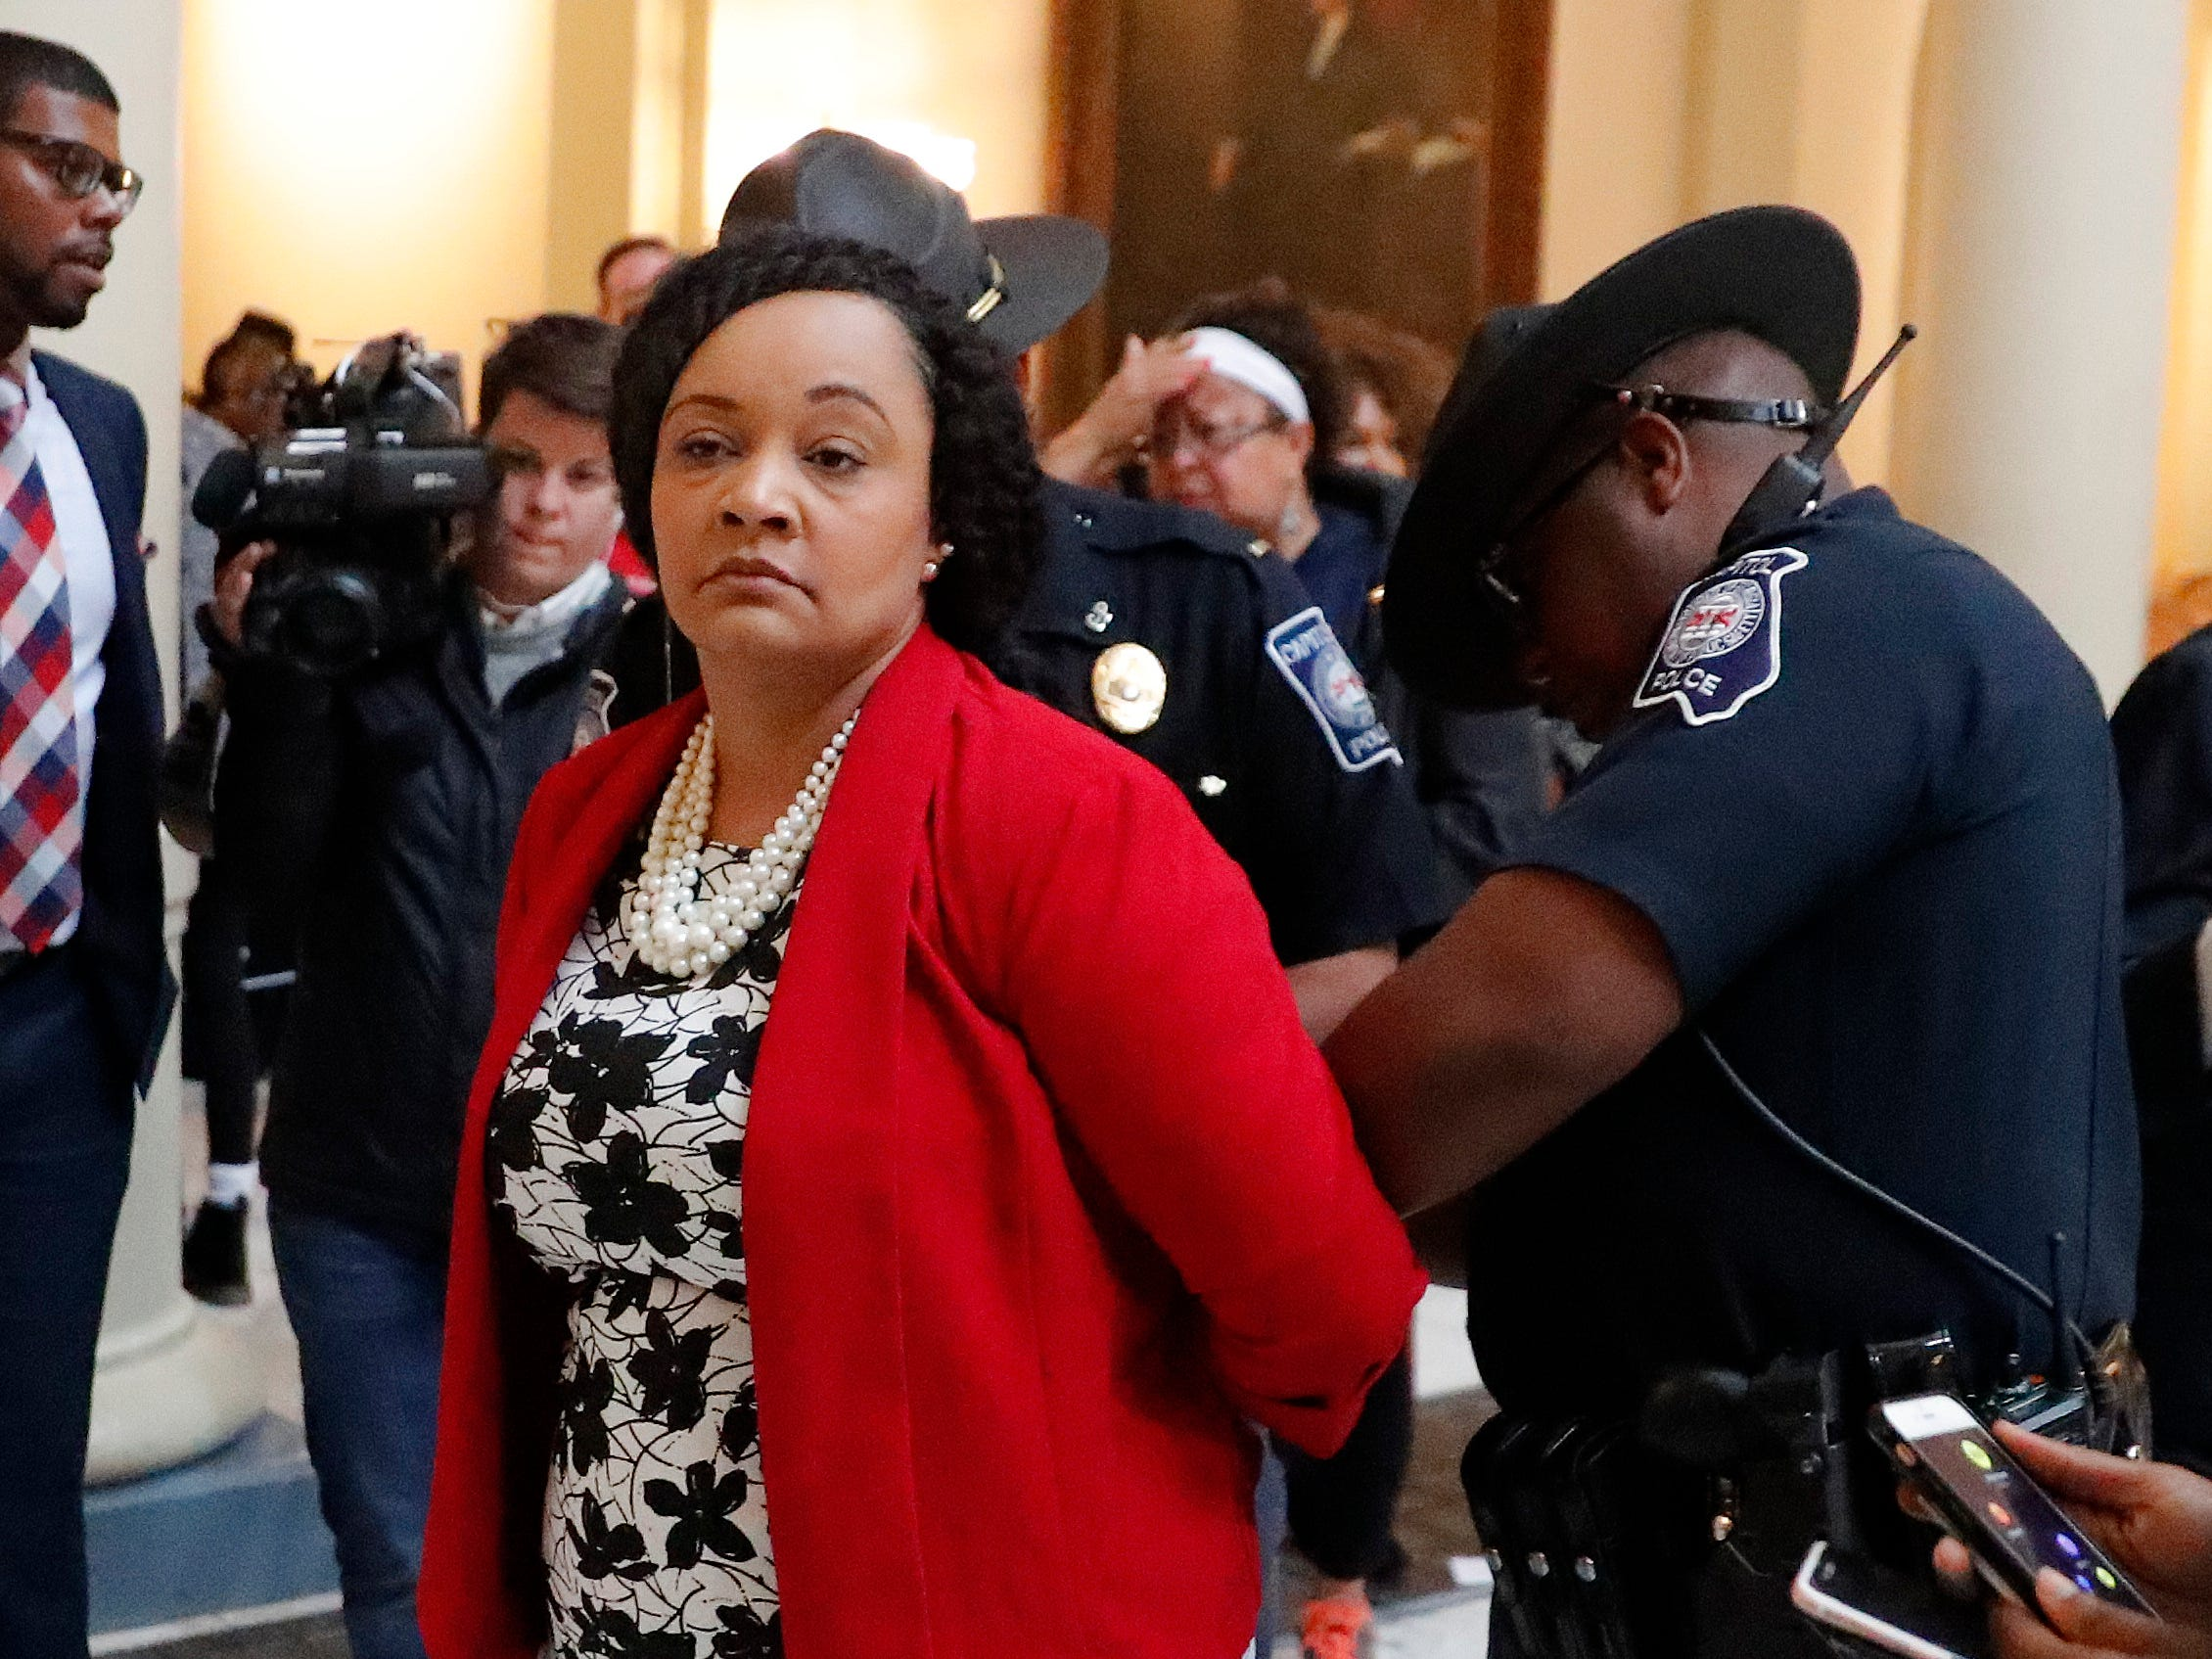 State Sen. Nikema Williams (D-Atlanta) is arrested by capitol police. Dozens of demonstrators had filled the rotunda of the Capitol building in Atlanta on Nov. 13, 2018, to protest election ballot counts.